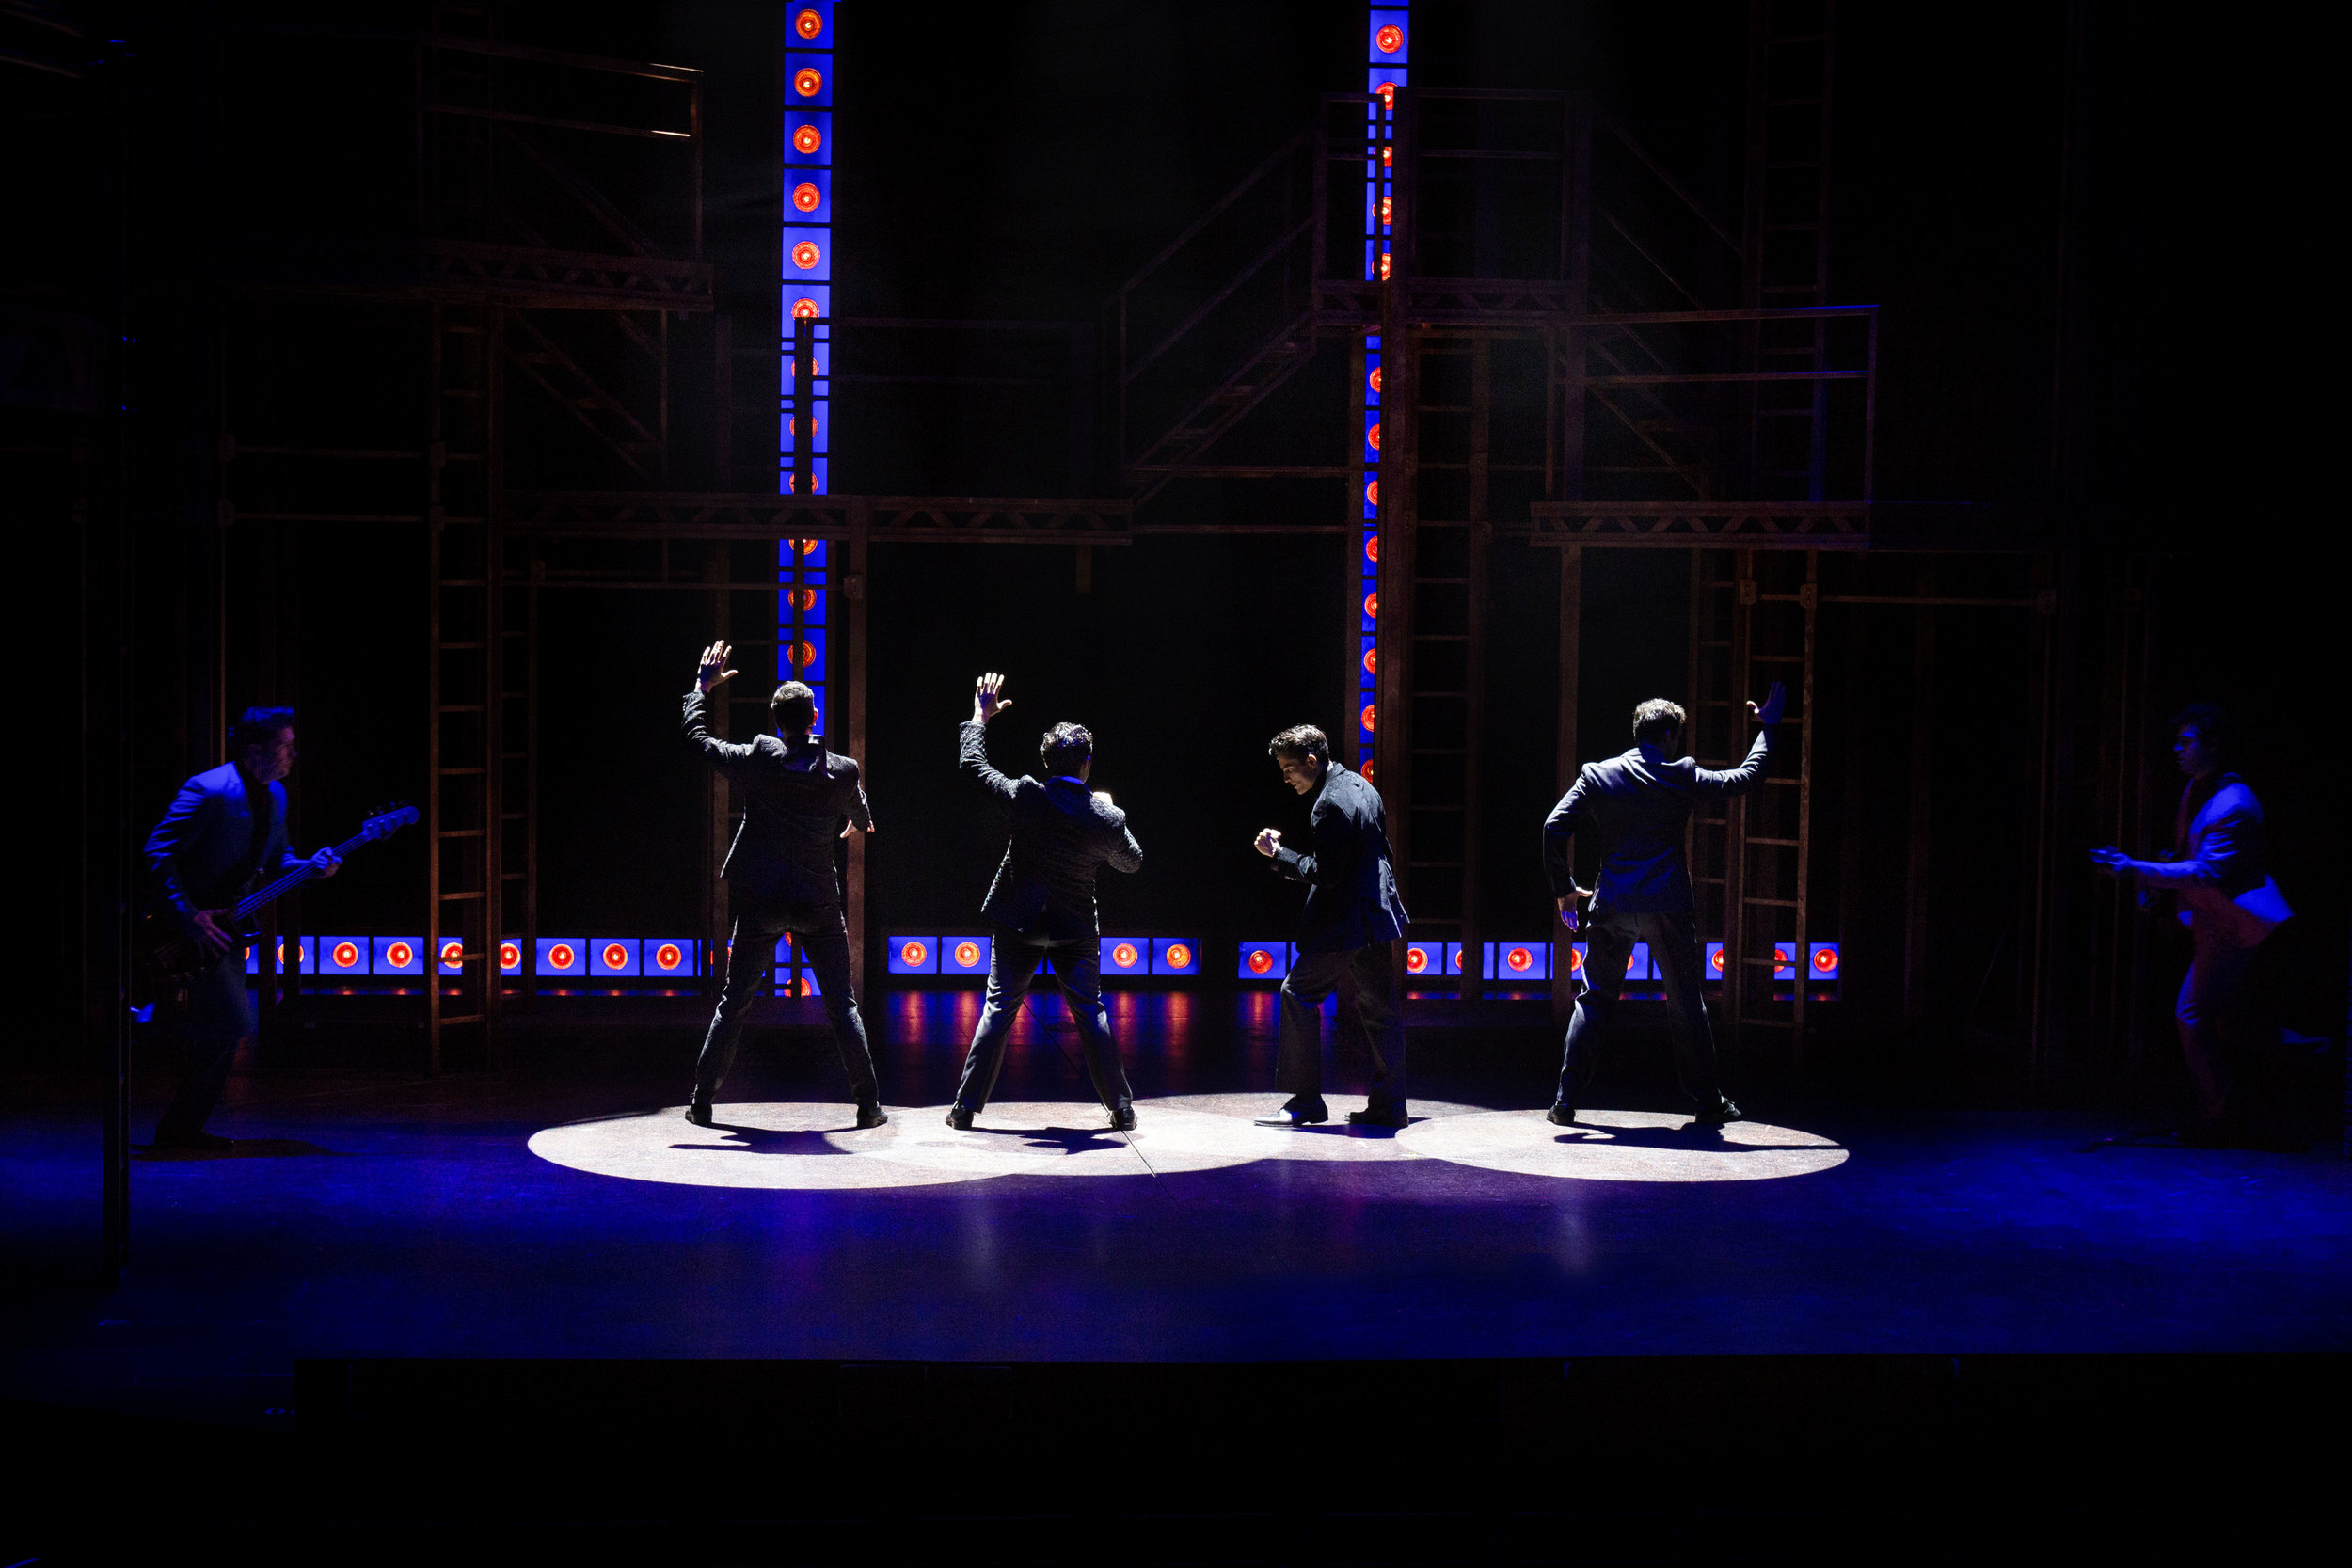 2019_Jersey-Boys_Photo-by-Paul-Charest_IMG_2623-CROP.jpg